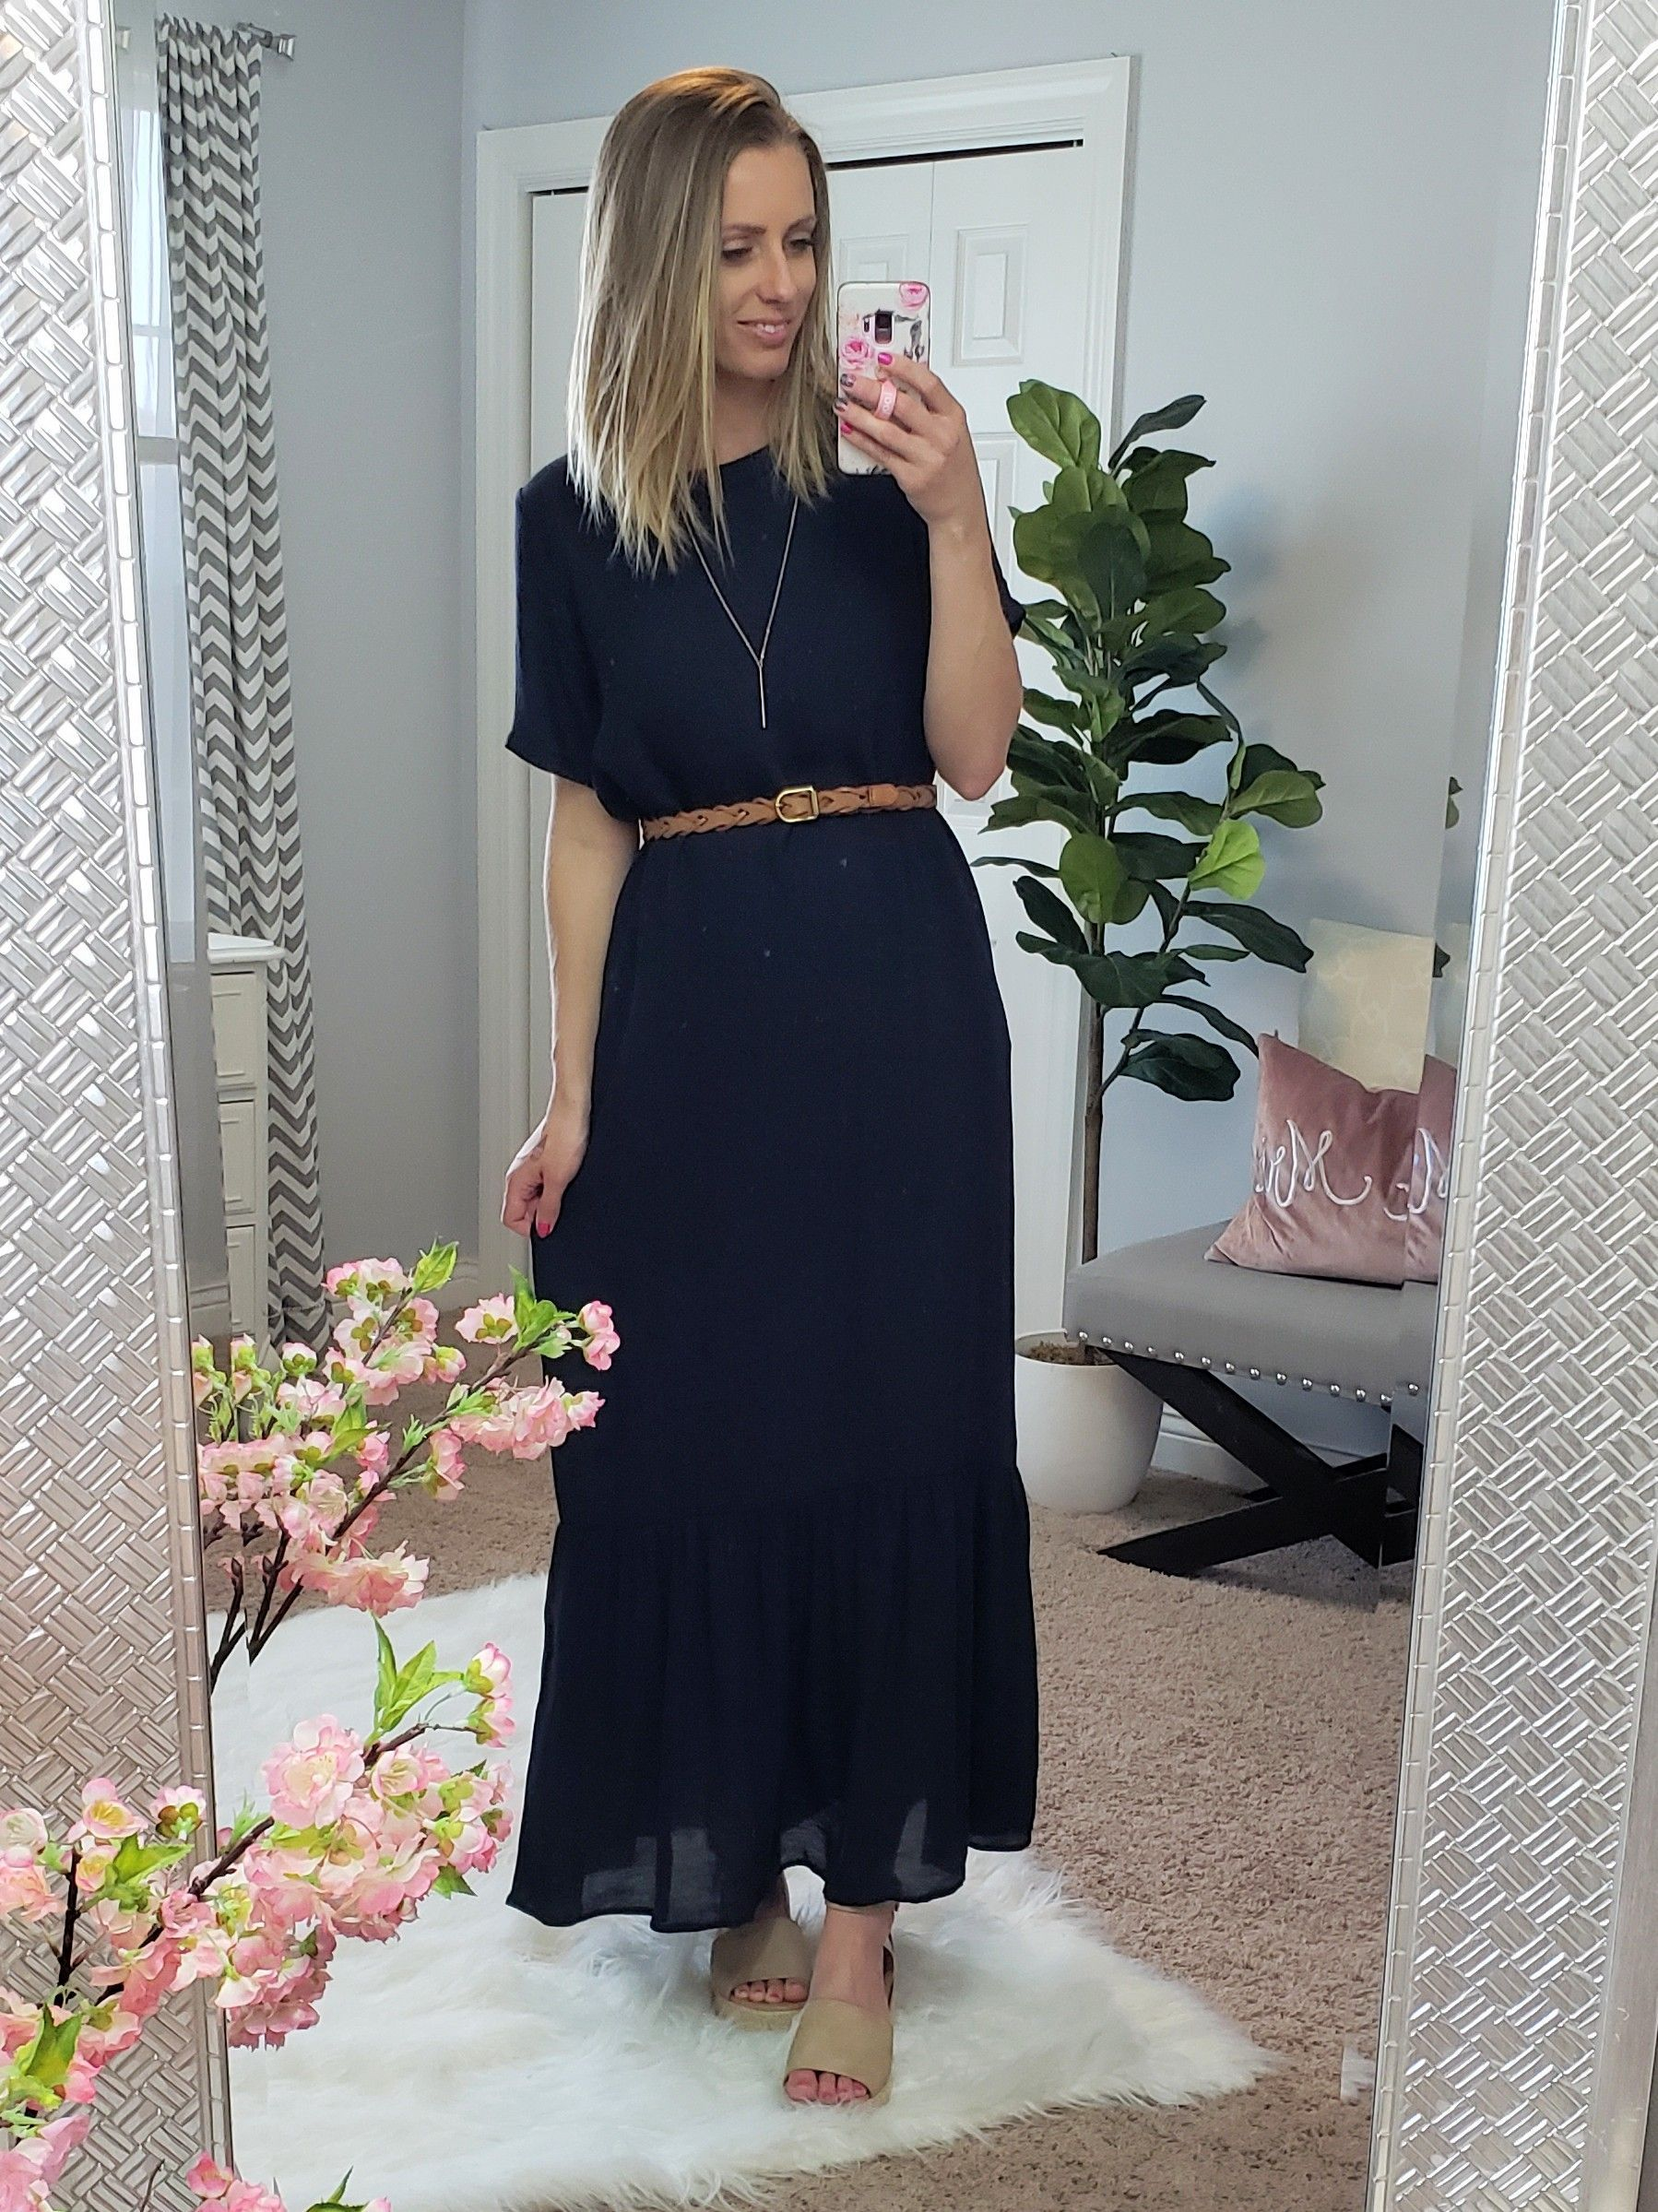 Tiered Lightweight T Shirt Maxi Dress With Pockets Great For A Late Summer Wedding Or Even A Trip To The Beach Maxi Dress Tiered Maxi Dress Dresses [ 2399 x 1798 Pixel ]